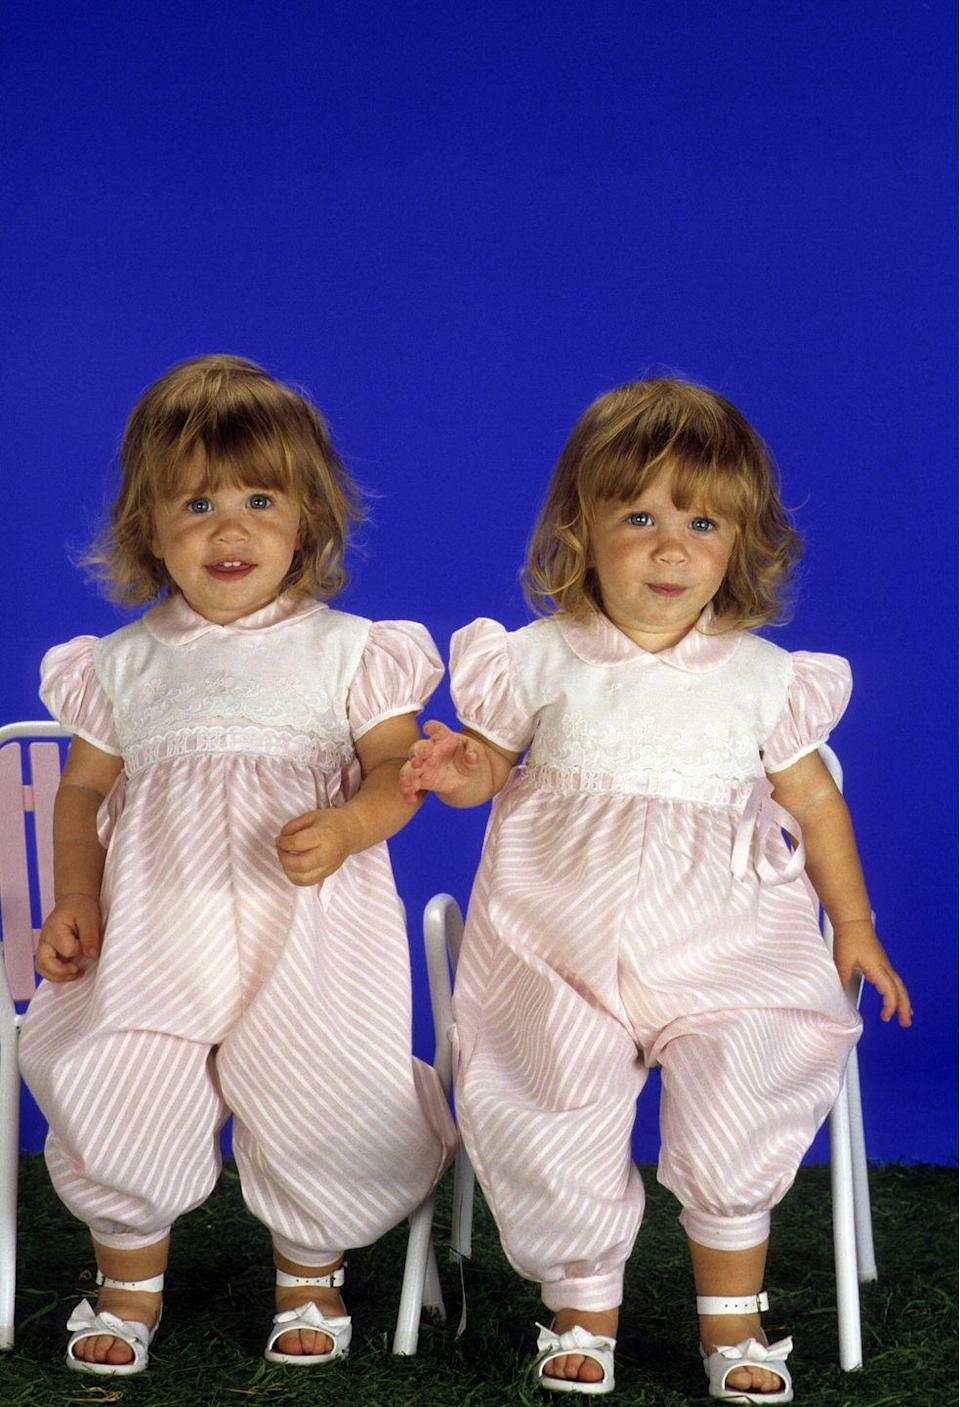 <p>Twins Mary-Kate and Ashley Olsen dominated the child star game in the late '80s and early to mid-'90s, first both appearing as baby Michelle Tanner on <em>Full House</em> before moving on to more starring roles in their own films, including <em>Passport to Paris</em> and <em>When in Rome</em>.</p>